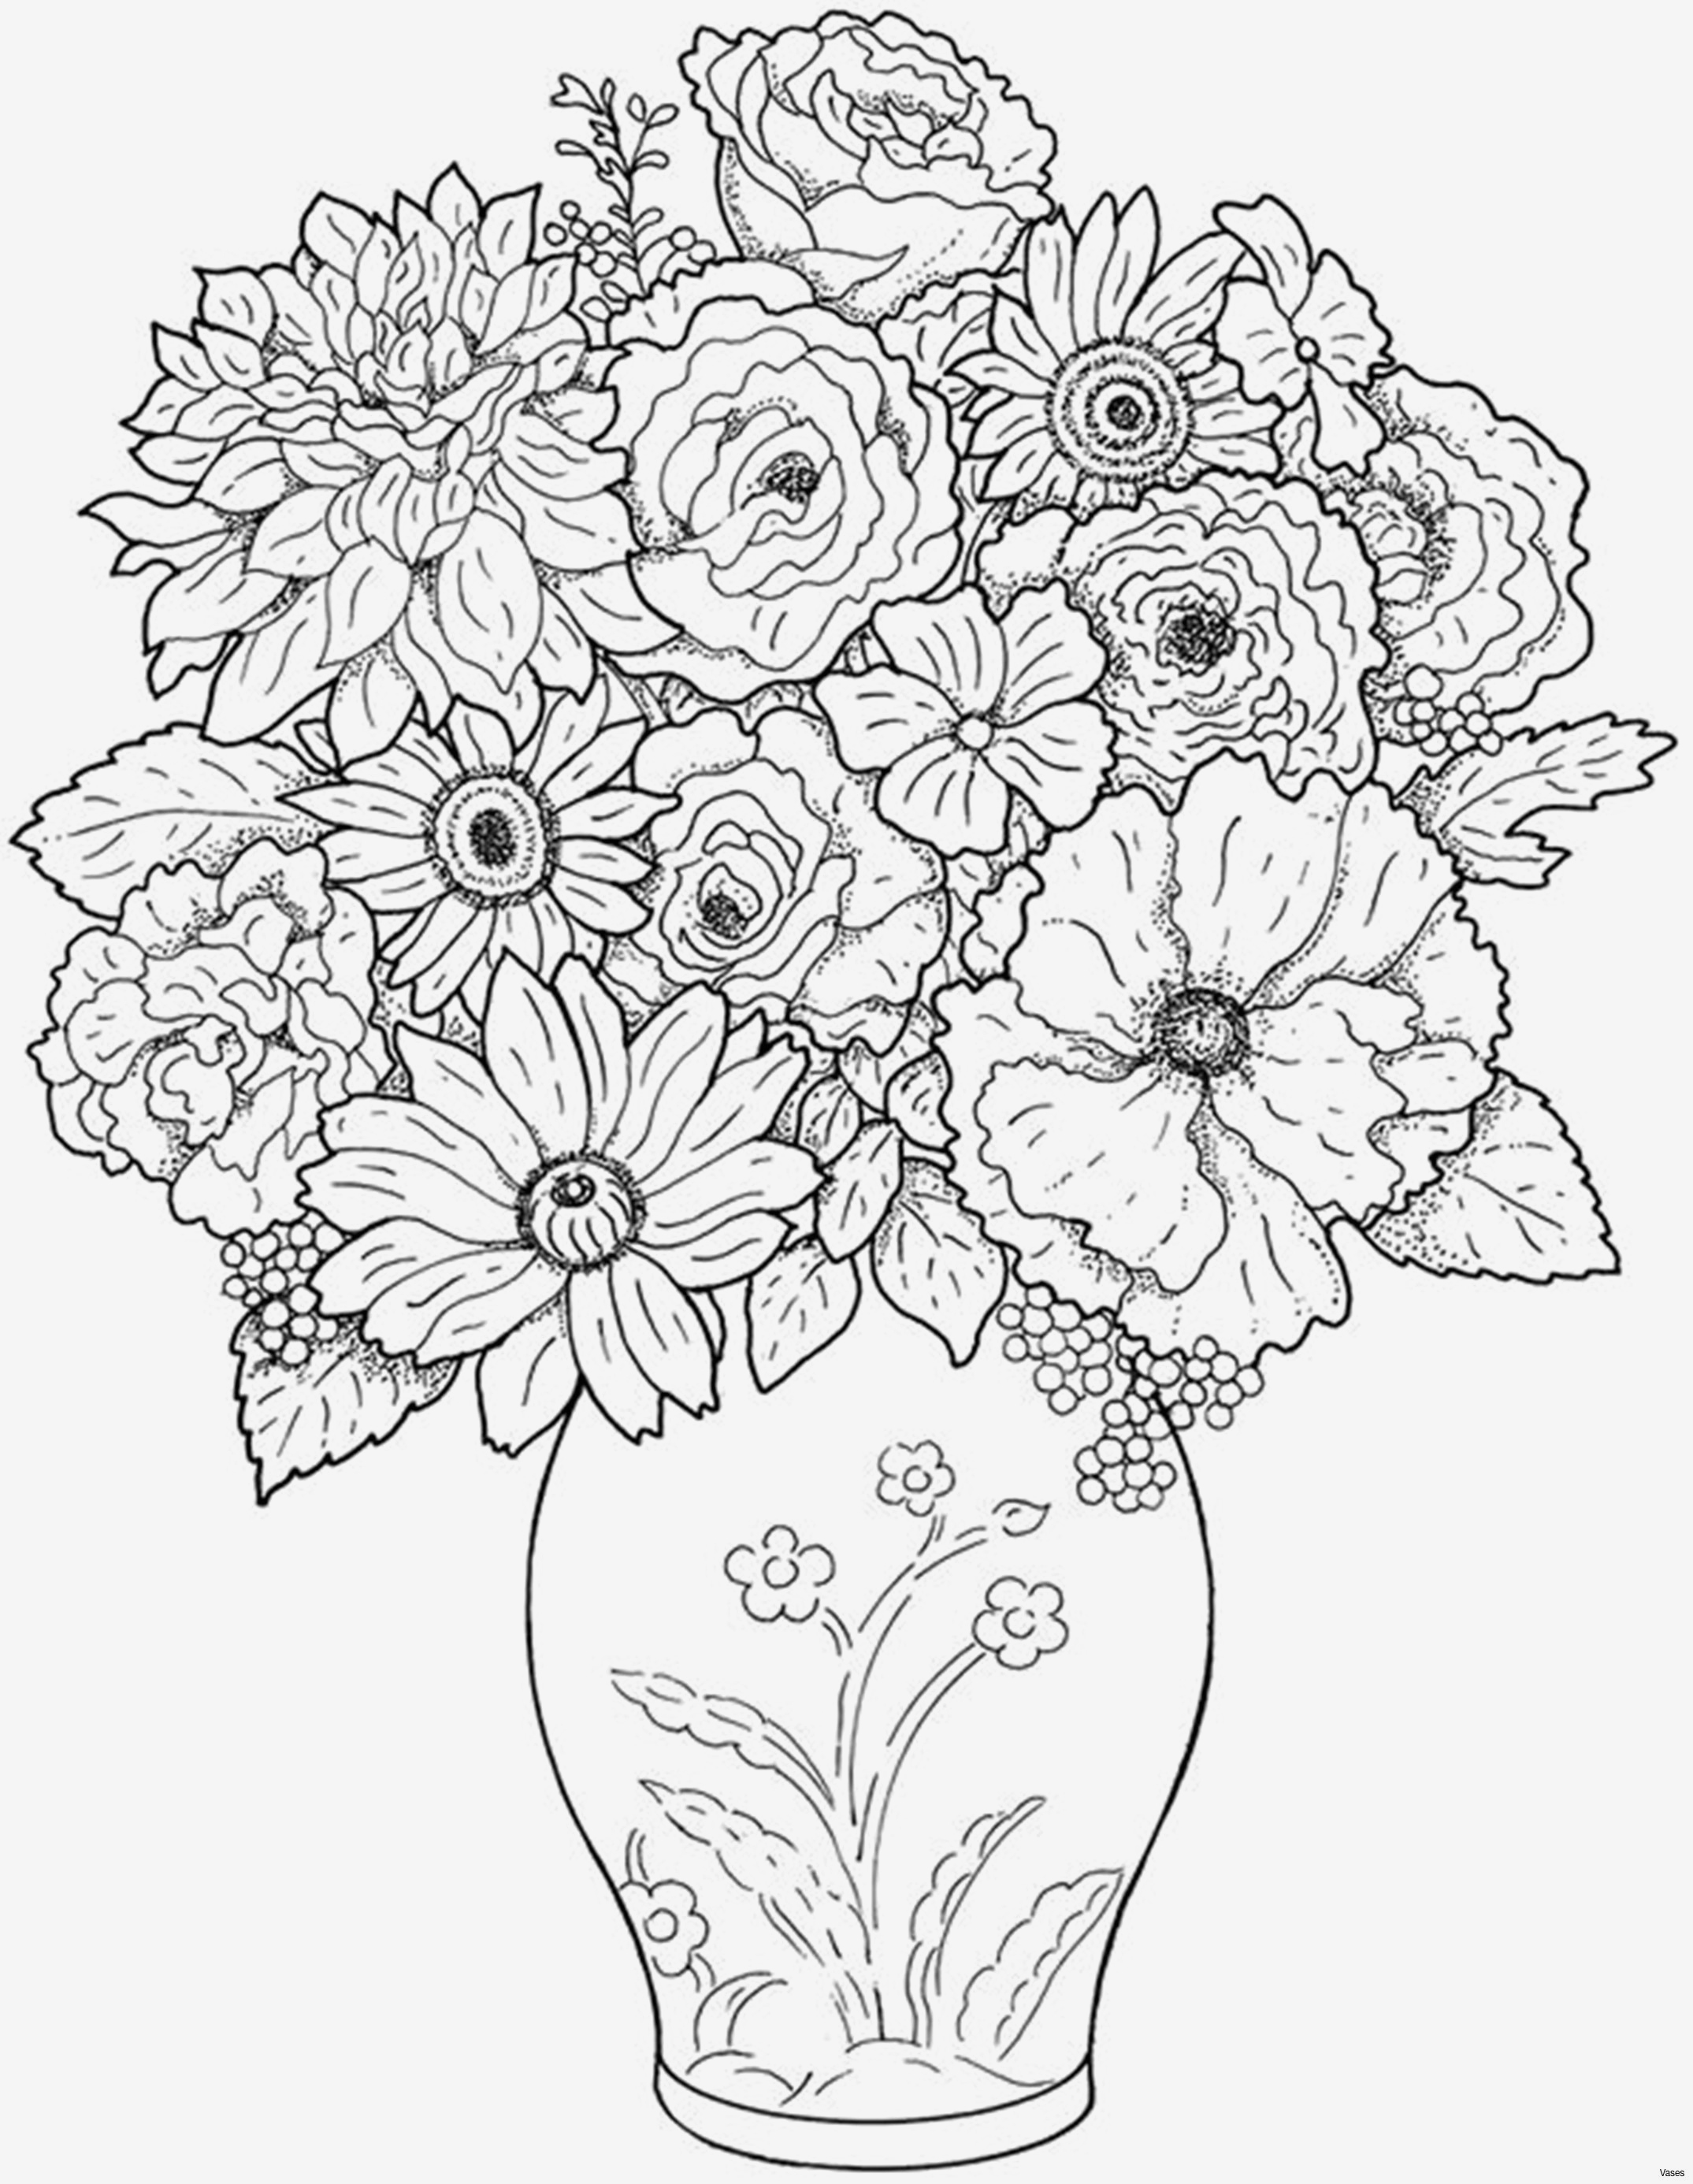 Advanced Coloring Pages Flowers  Collection 18e - Save it to your computer